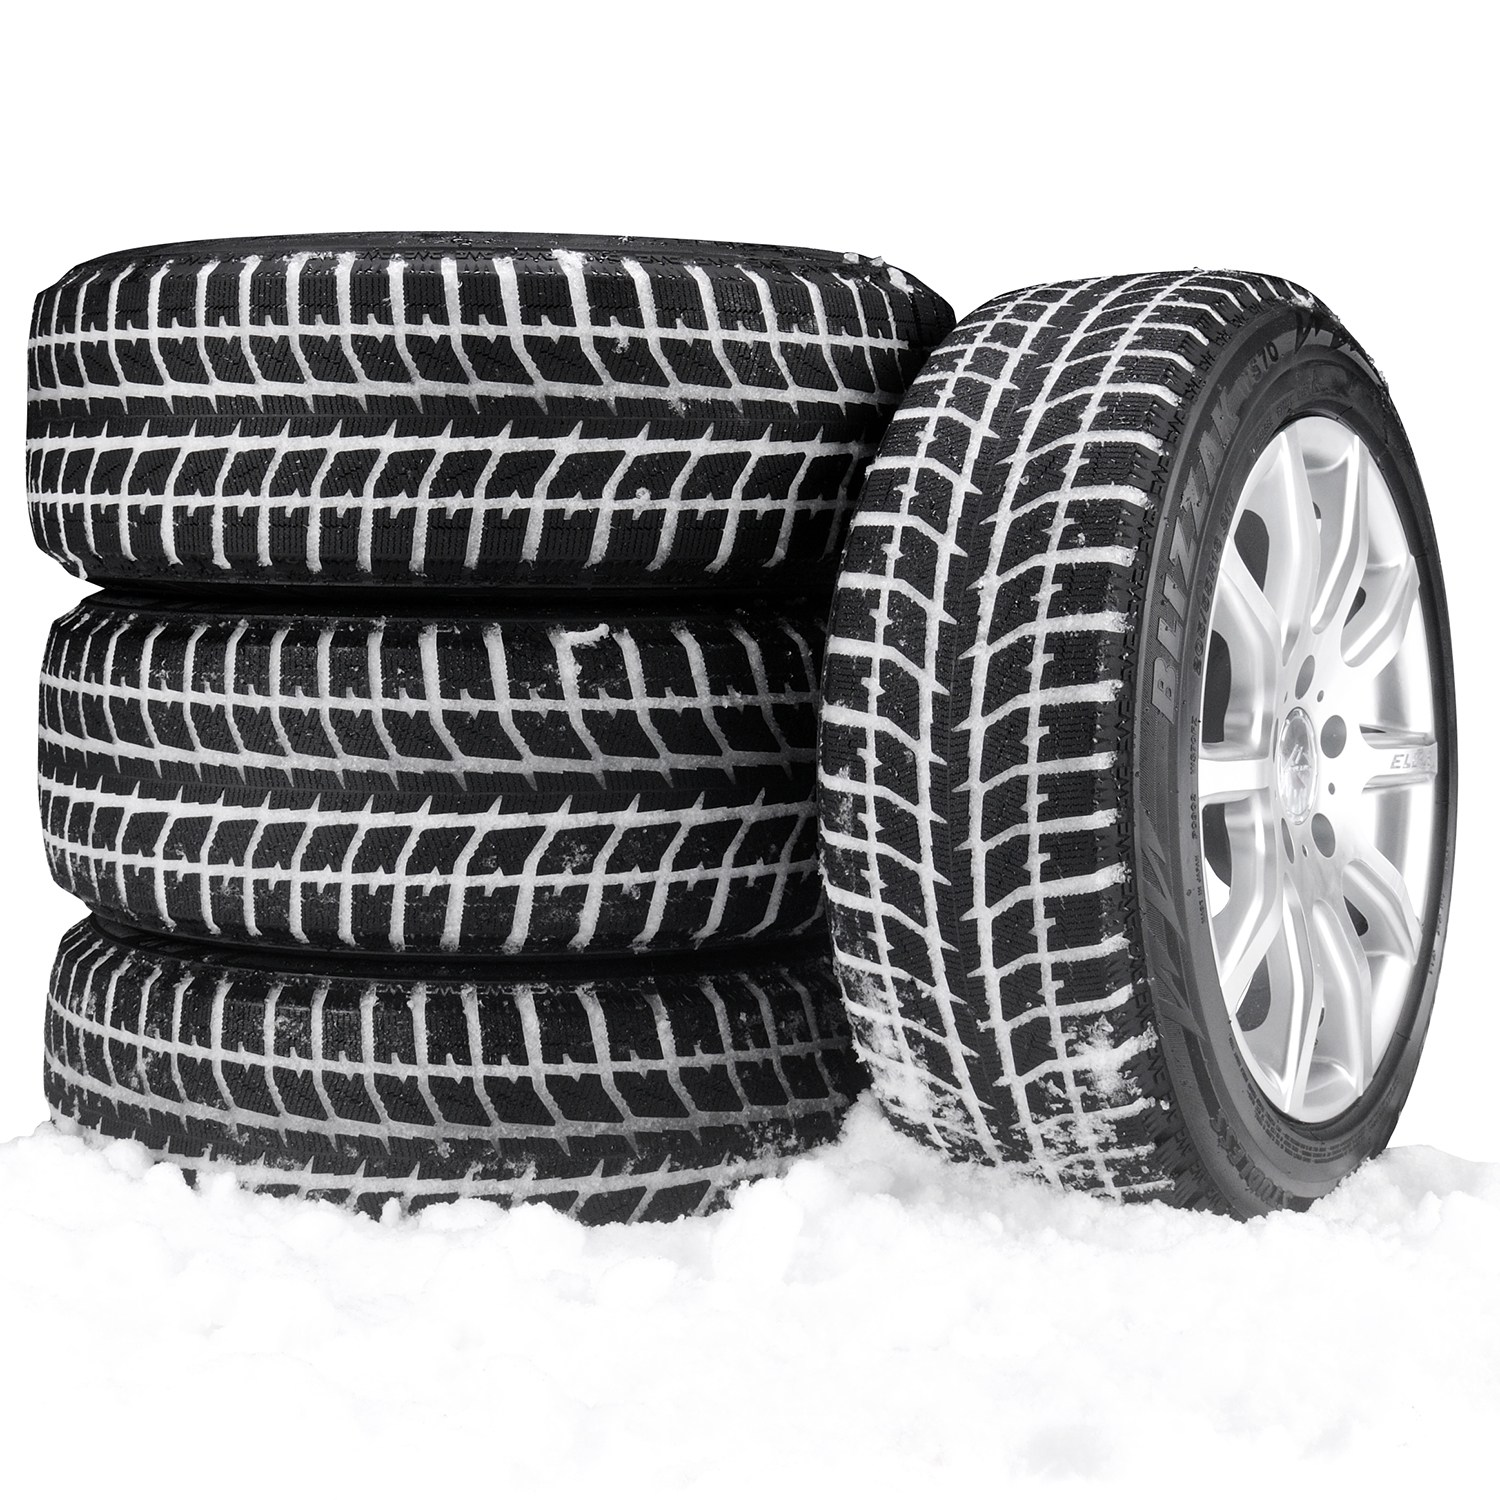 In the past, winter tires have been notoriously loud, however this is no longer the case. When changing from an all-season tire to a winter tire, you may hear a slight difference, but the noise levels are nowhere near as drastic as in the past. Changing from all-season tires to studded winter tires will show a noticeable increase in noise.